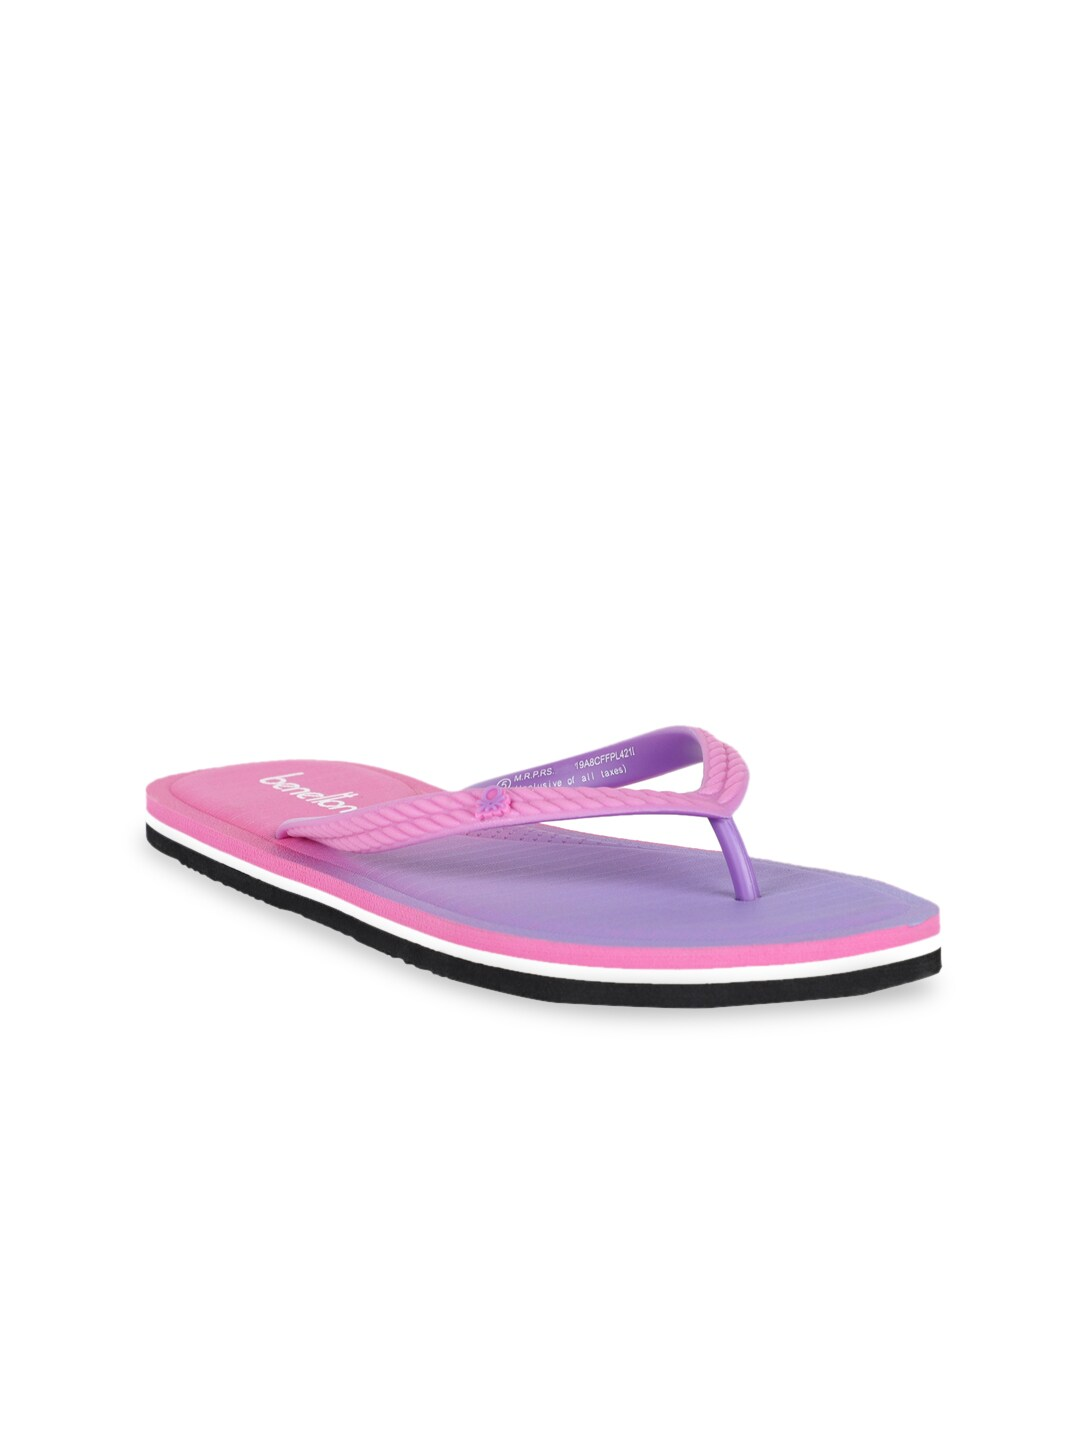 United Colors of Benetton Women Pink & Lavender Ombre Thong Flip-Flops